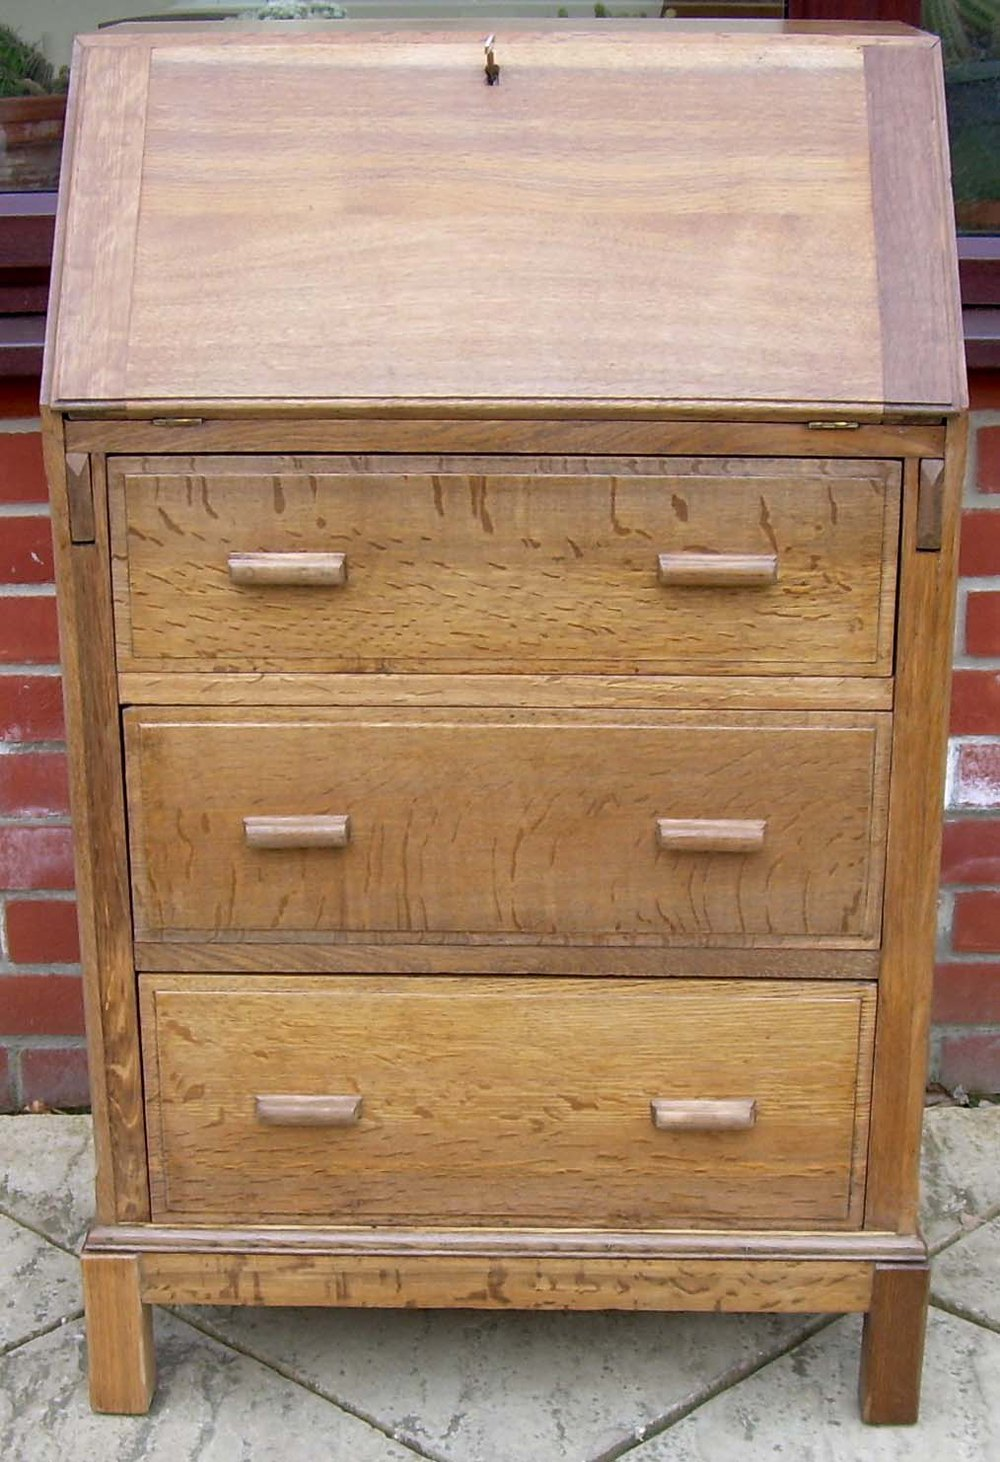 A Golden Oak Art Deco Bureau - Antiques Atlas